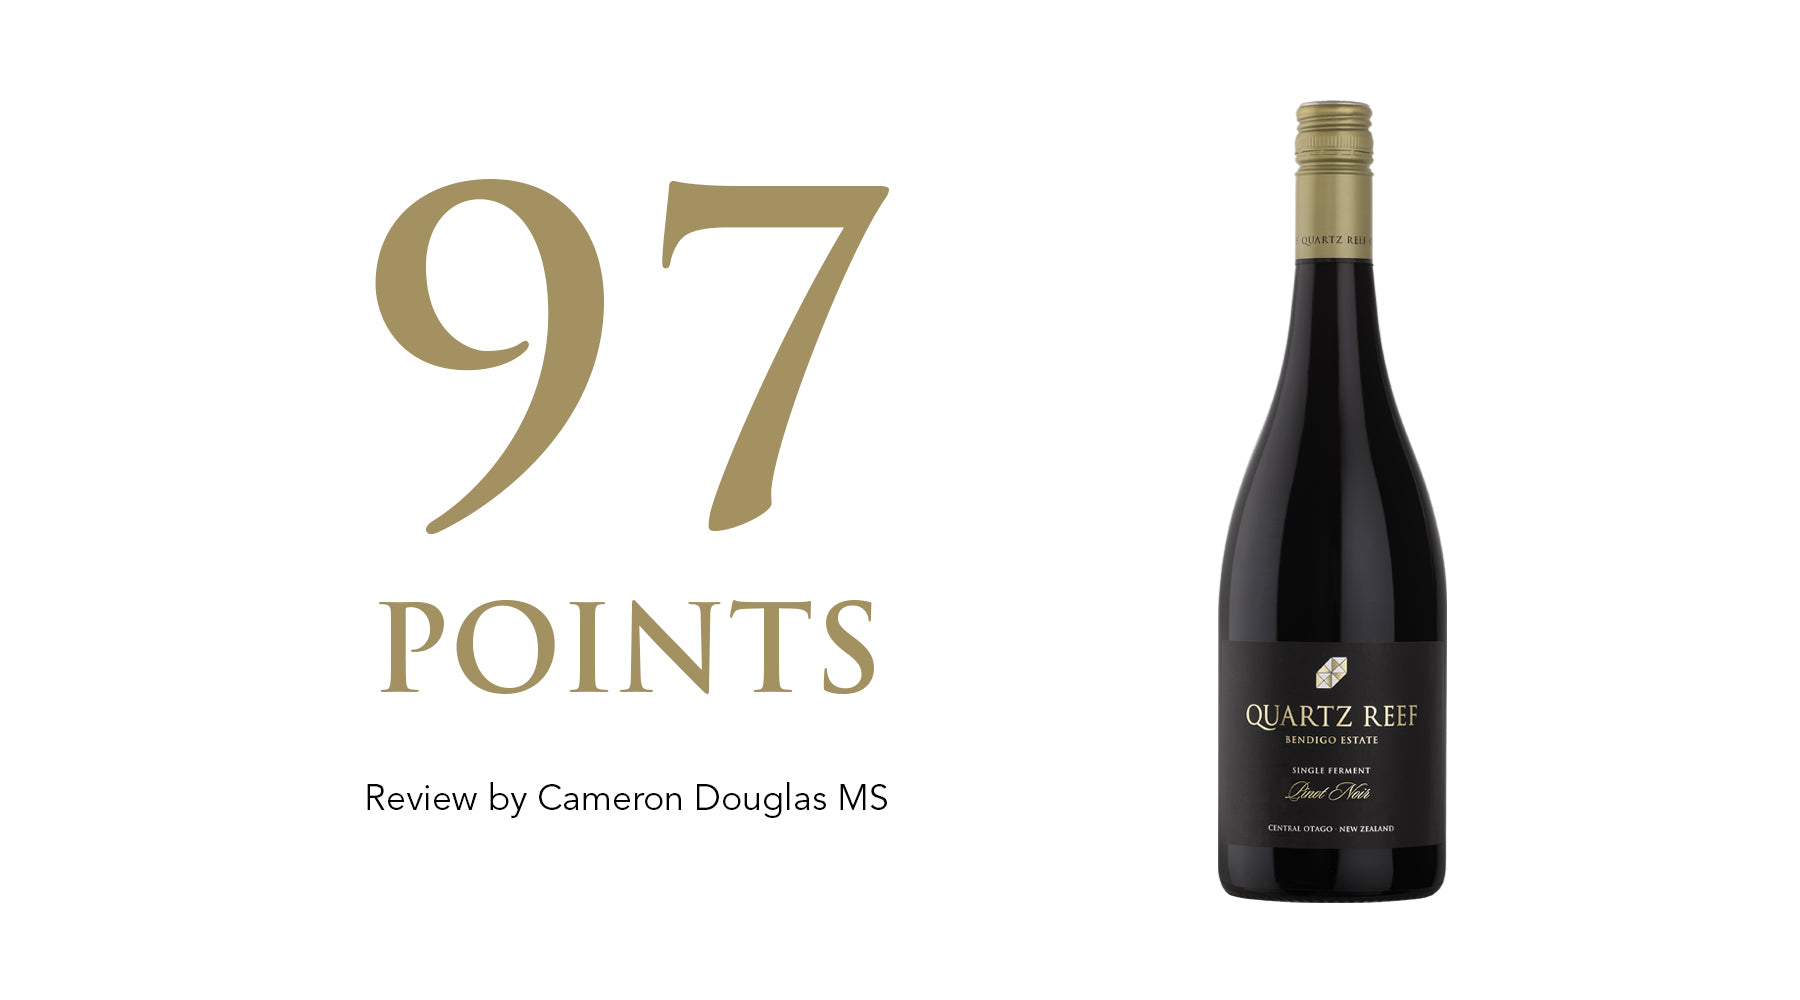 Single Ferment Pinot Noir 2017 - Awarded 97 Points